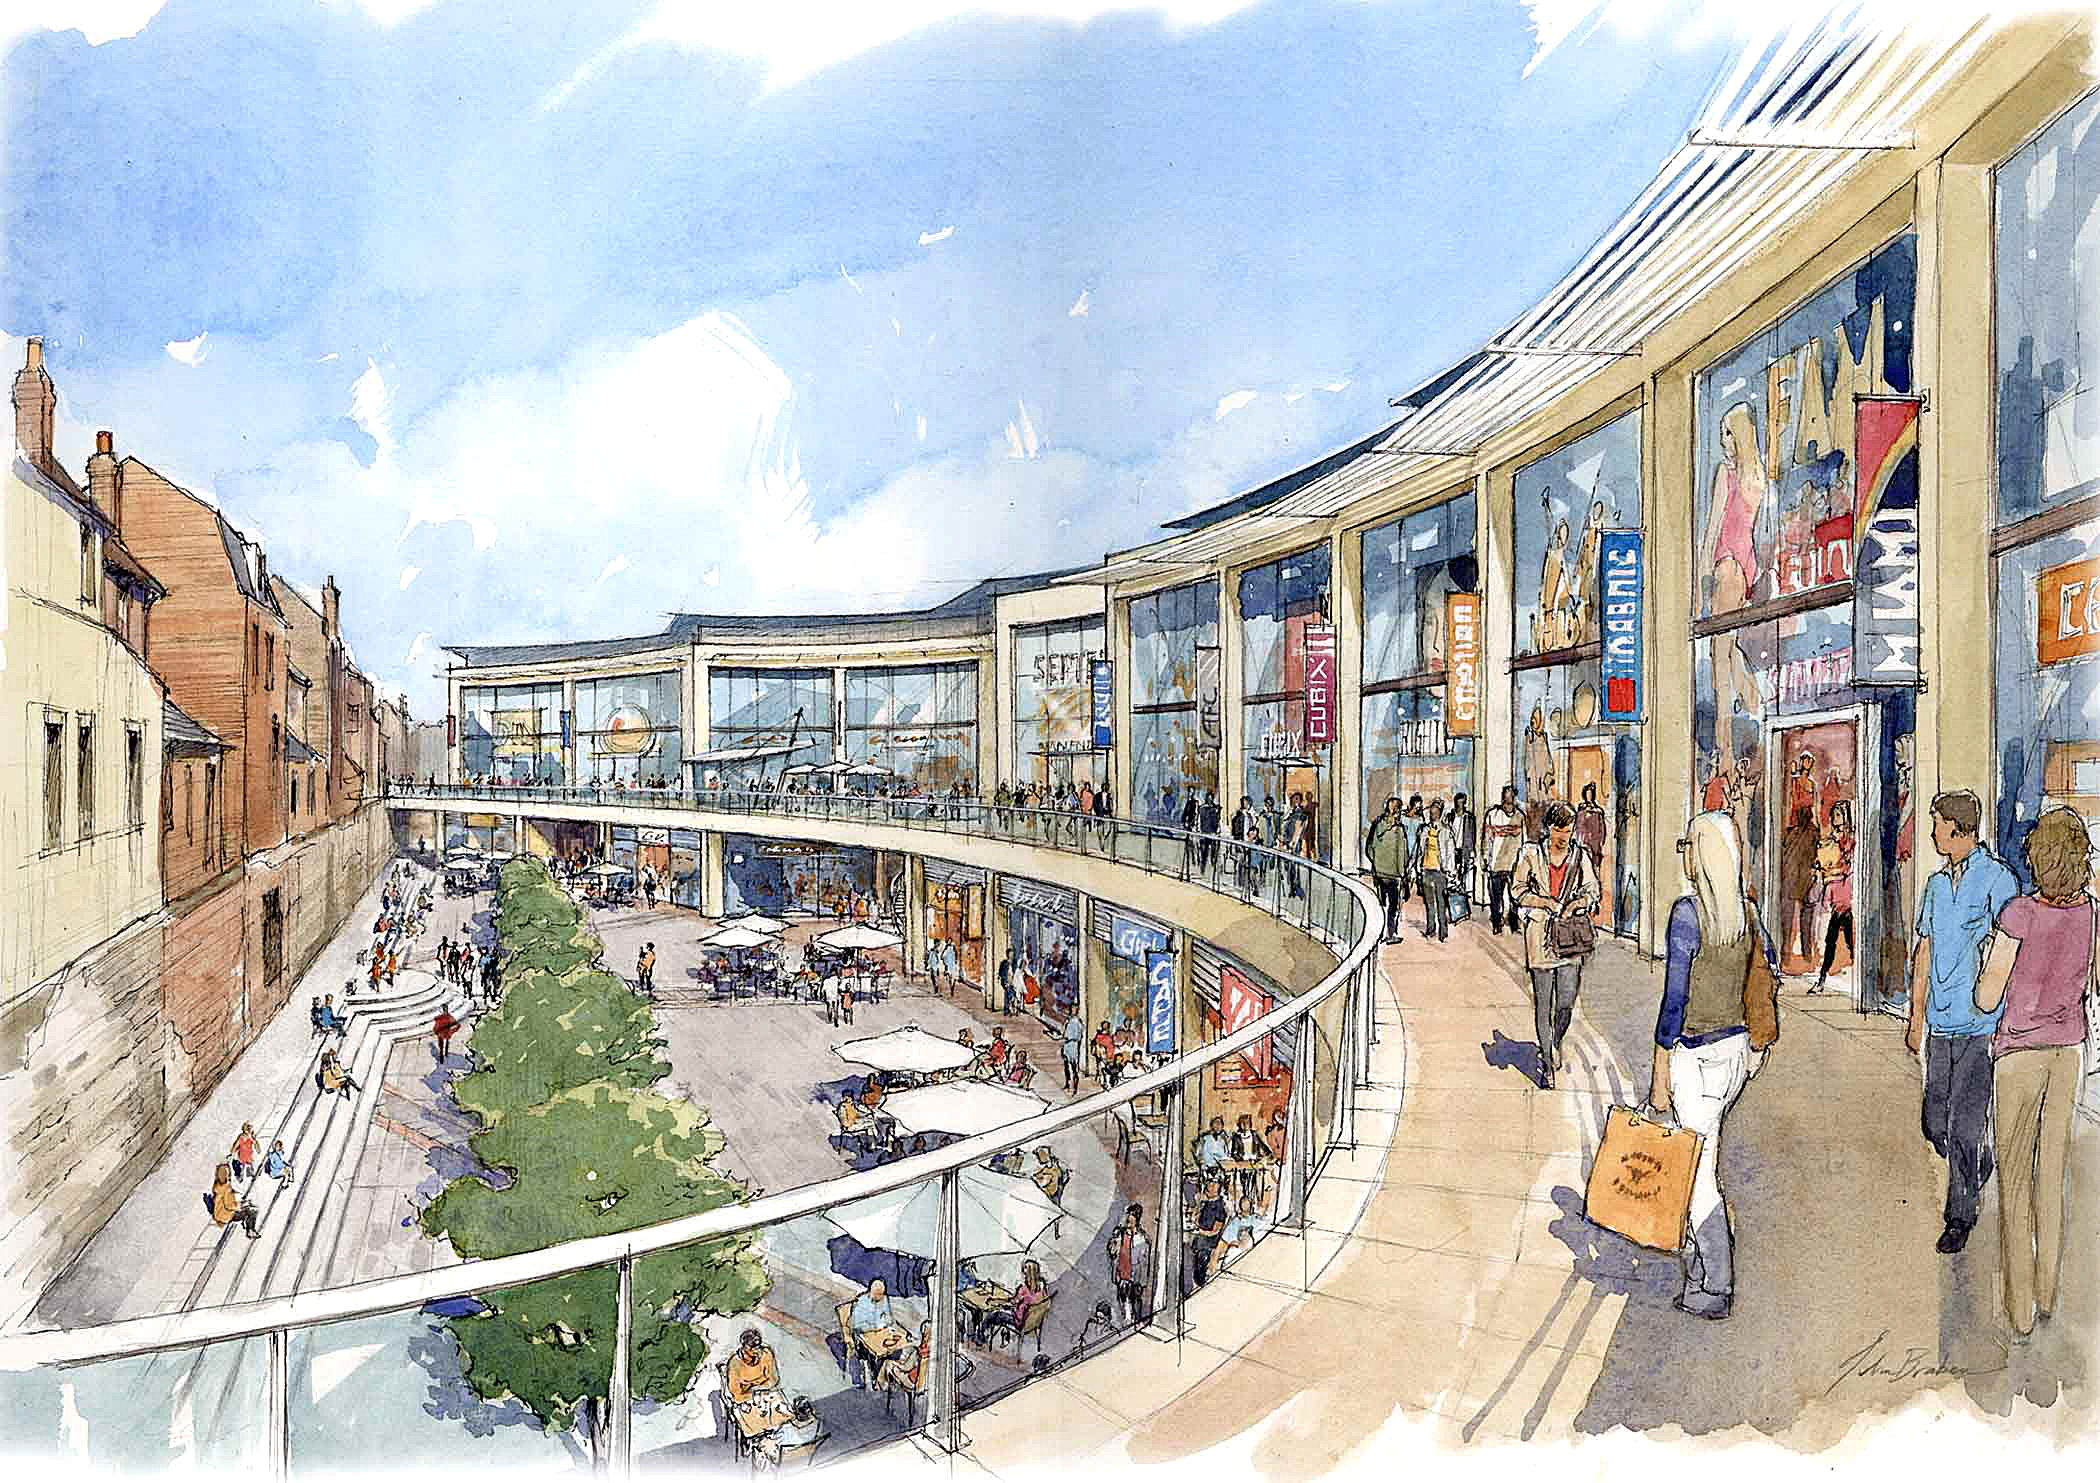 An artist's impression from 2012 shows how Vineyard Gate shopping centre could look.